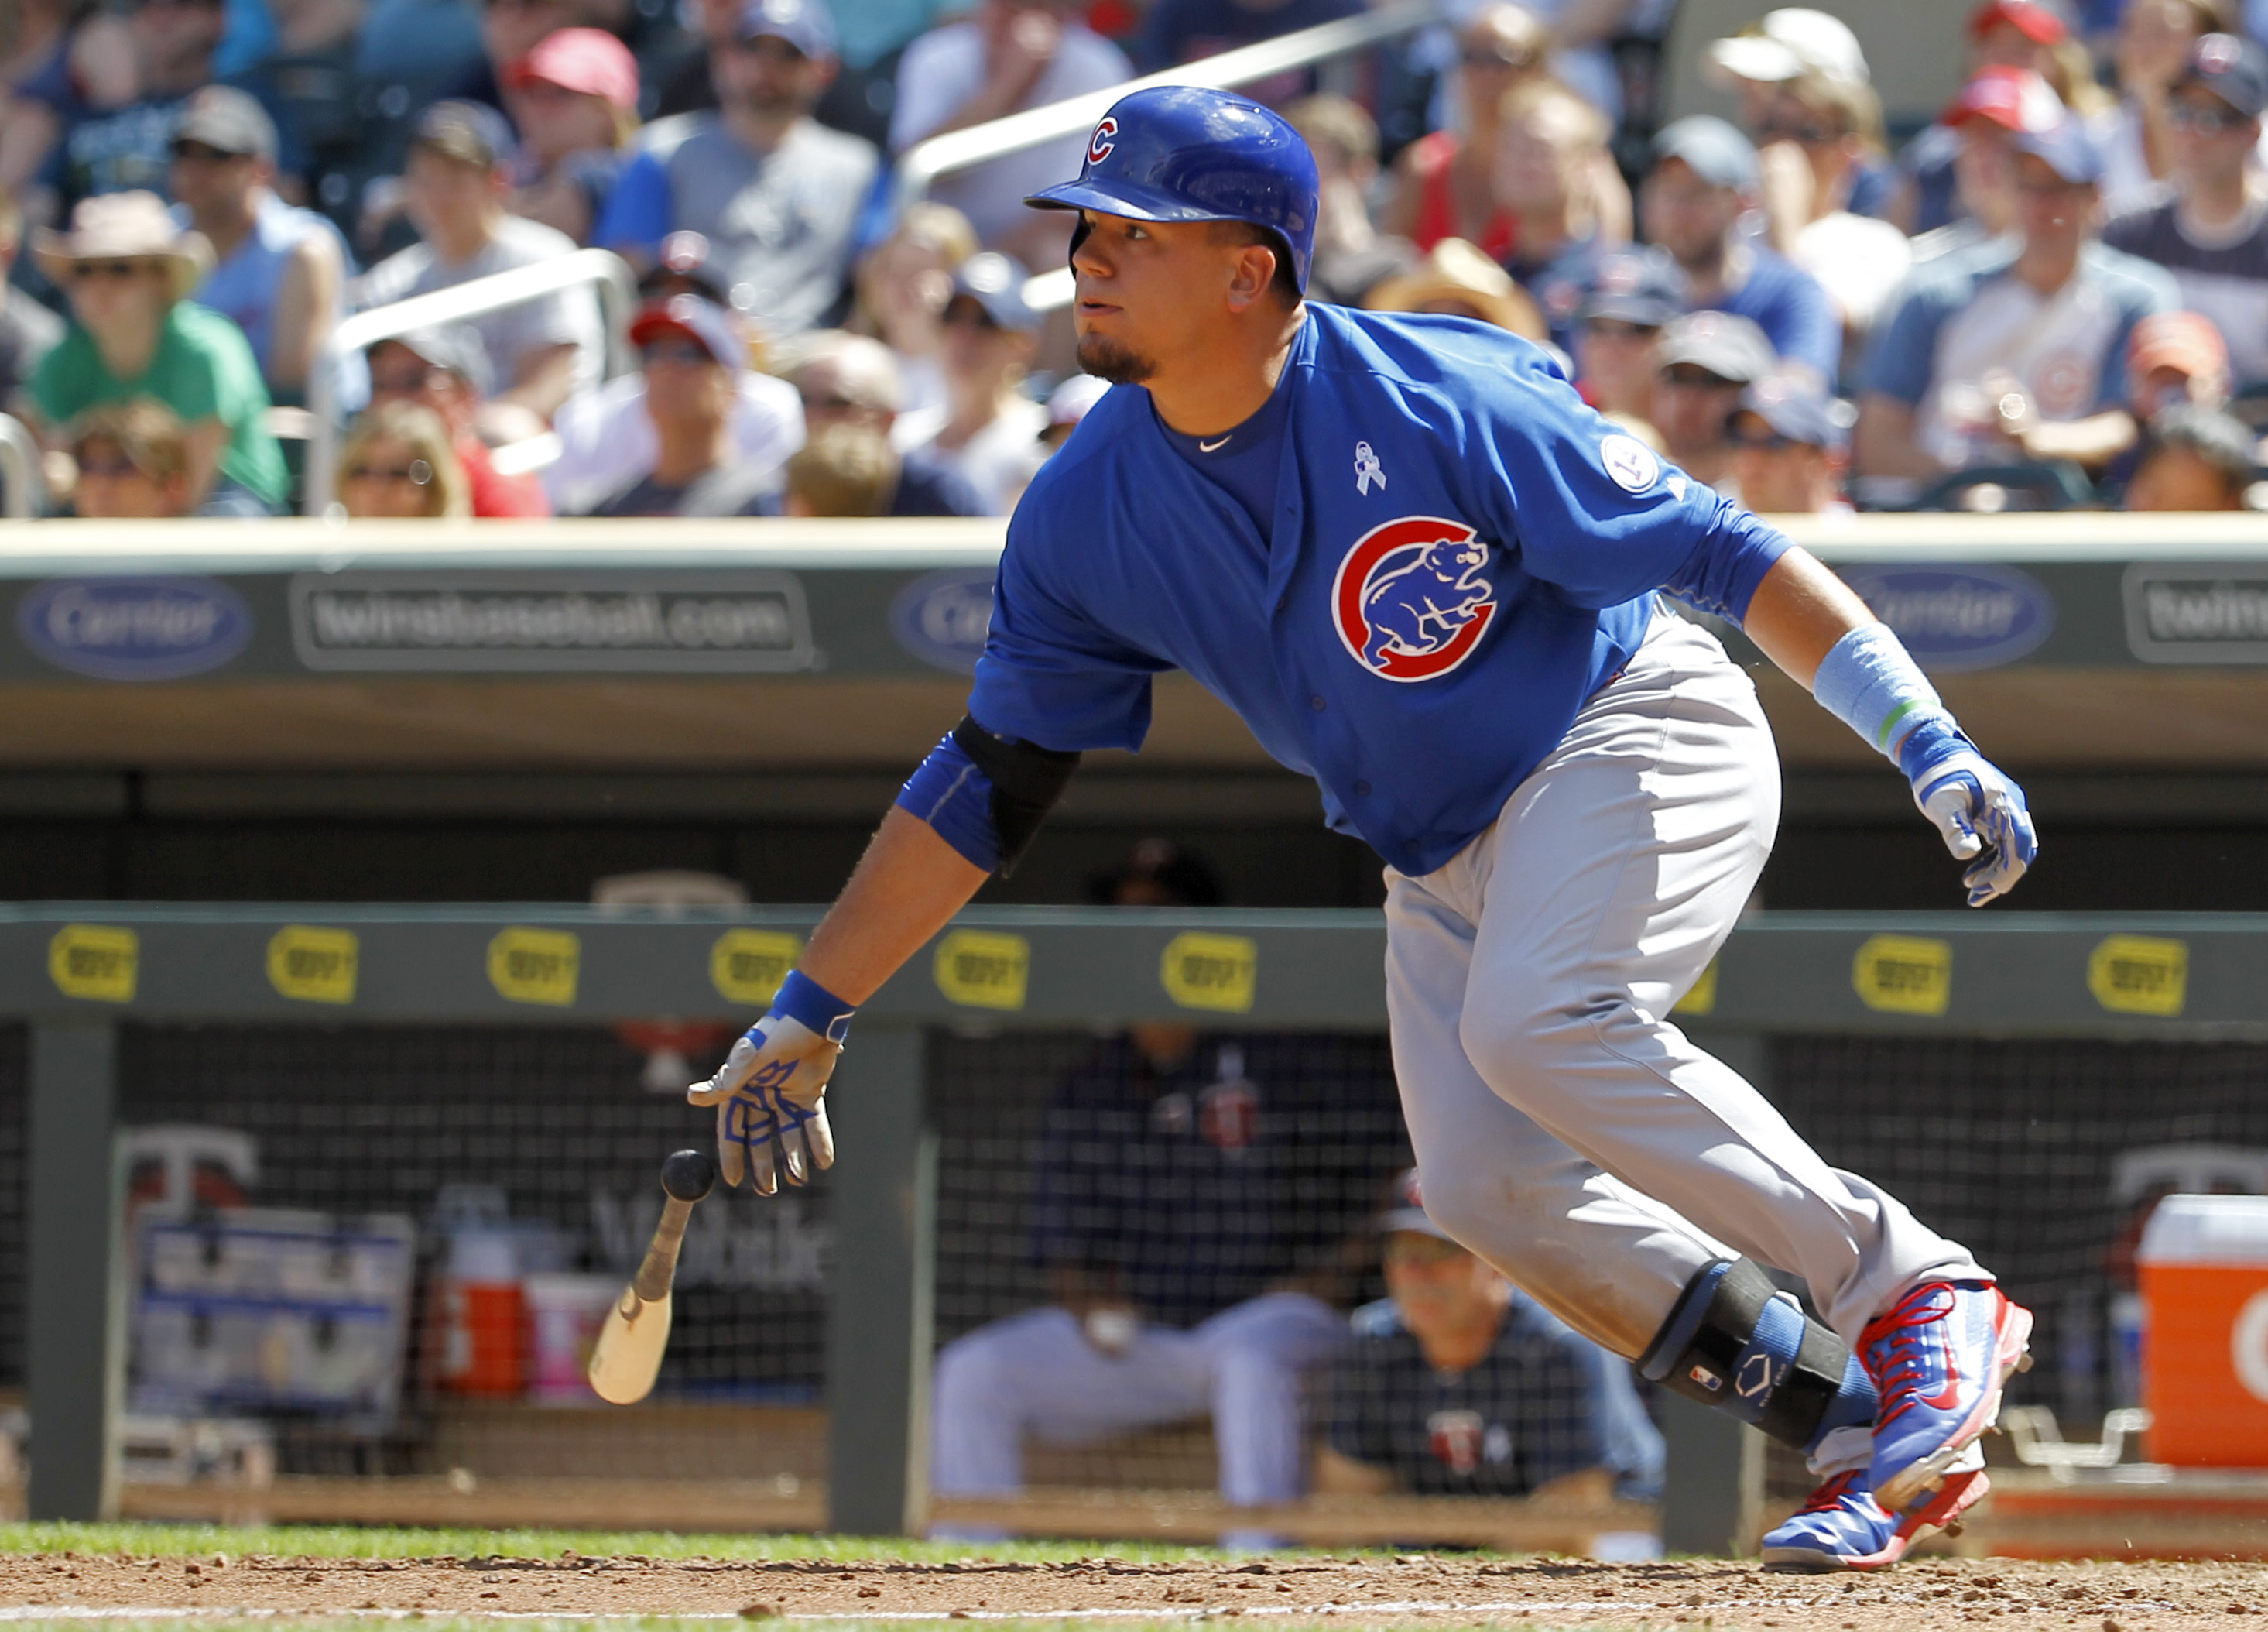 Chicago Cubs designated hitter Kyle Schwarber watches the flight of his two-run single off Minnesota Twins relief pitcher Aaron Thompson during the eighth inning of a baseball game in Minneapolis, Sunday, June 21, 2015. The Cubs won 8-0. (AP Photo/Ann Hei